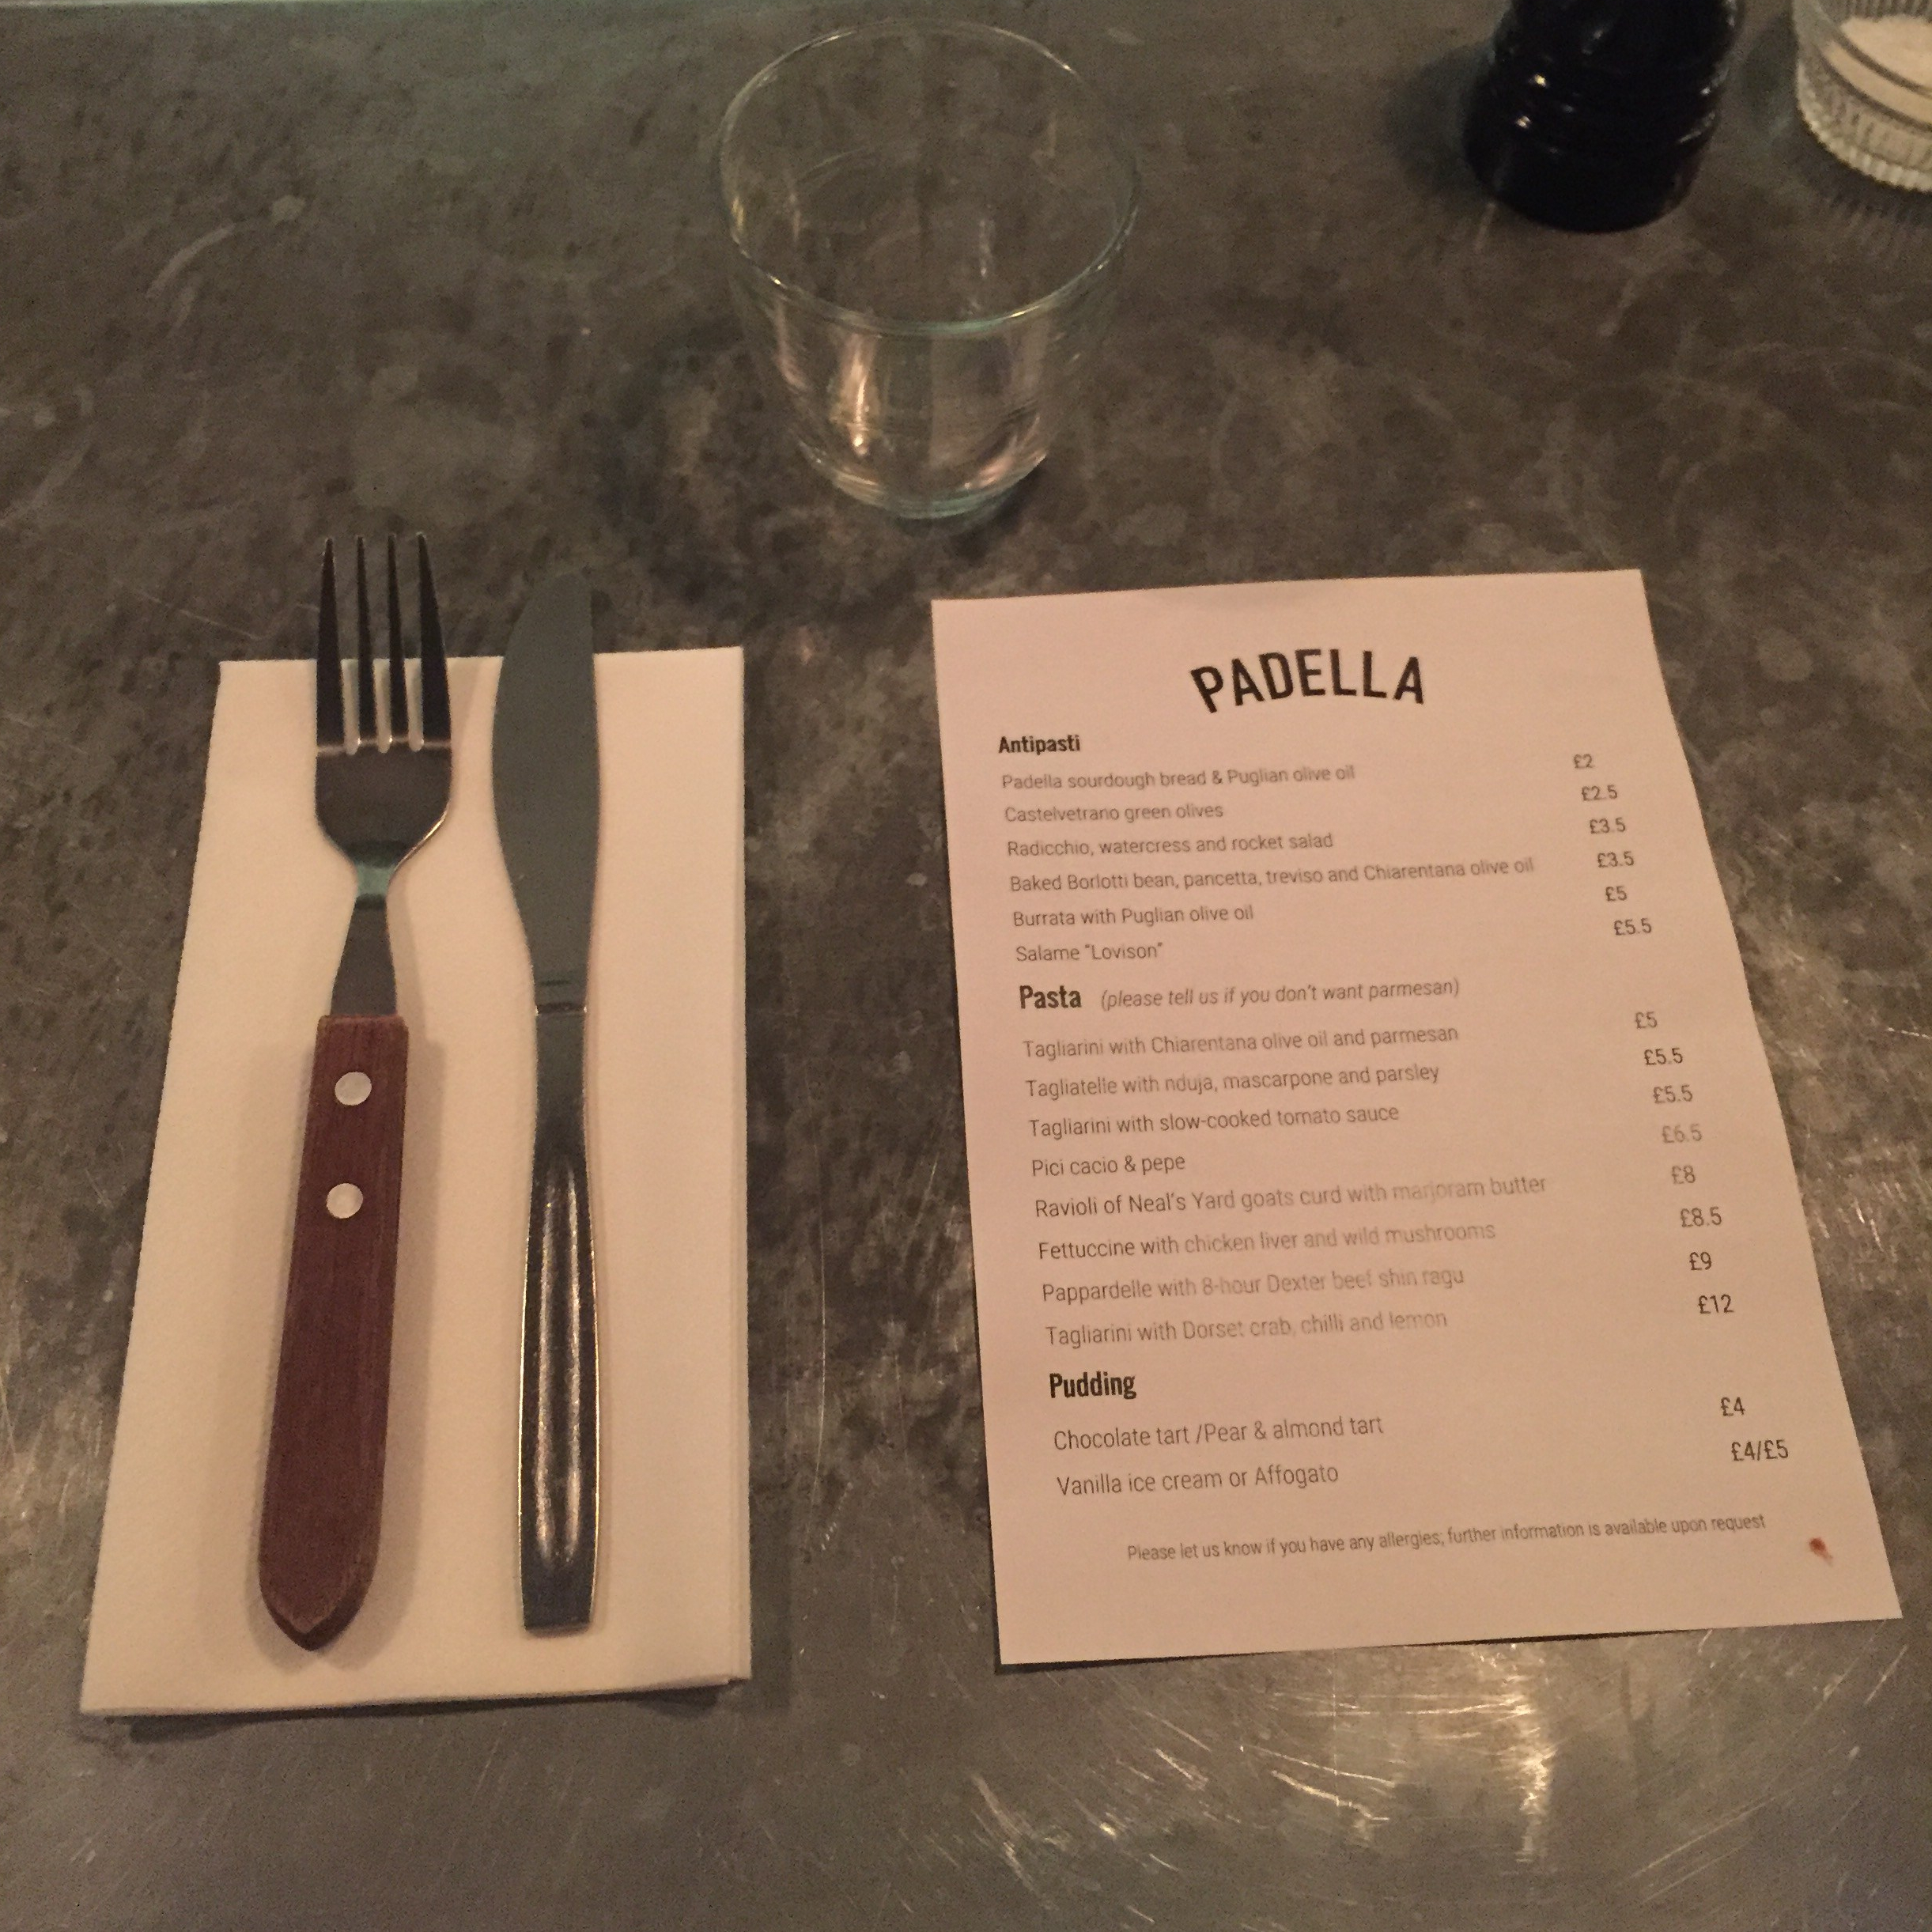 Padella Oil Review Padella Just Another London Foodie